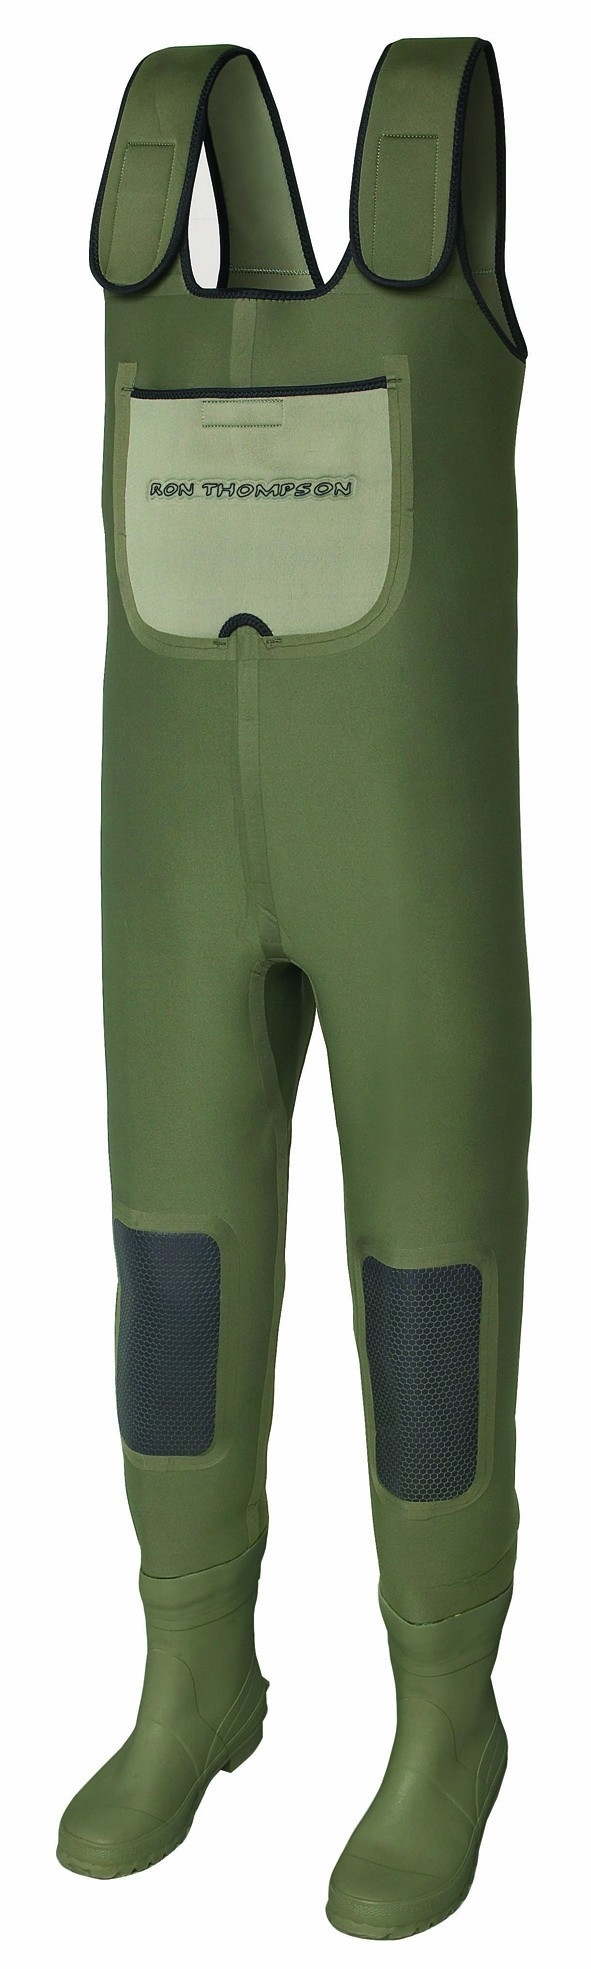 Ron Thompson Neopreen Wader 4 mm.